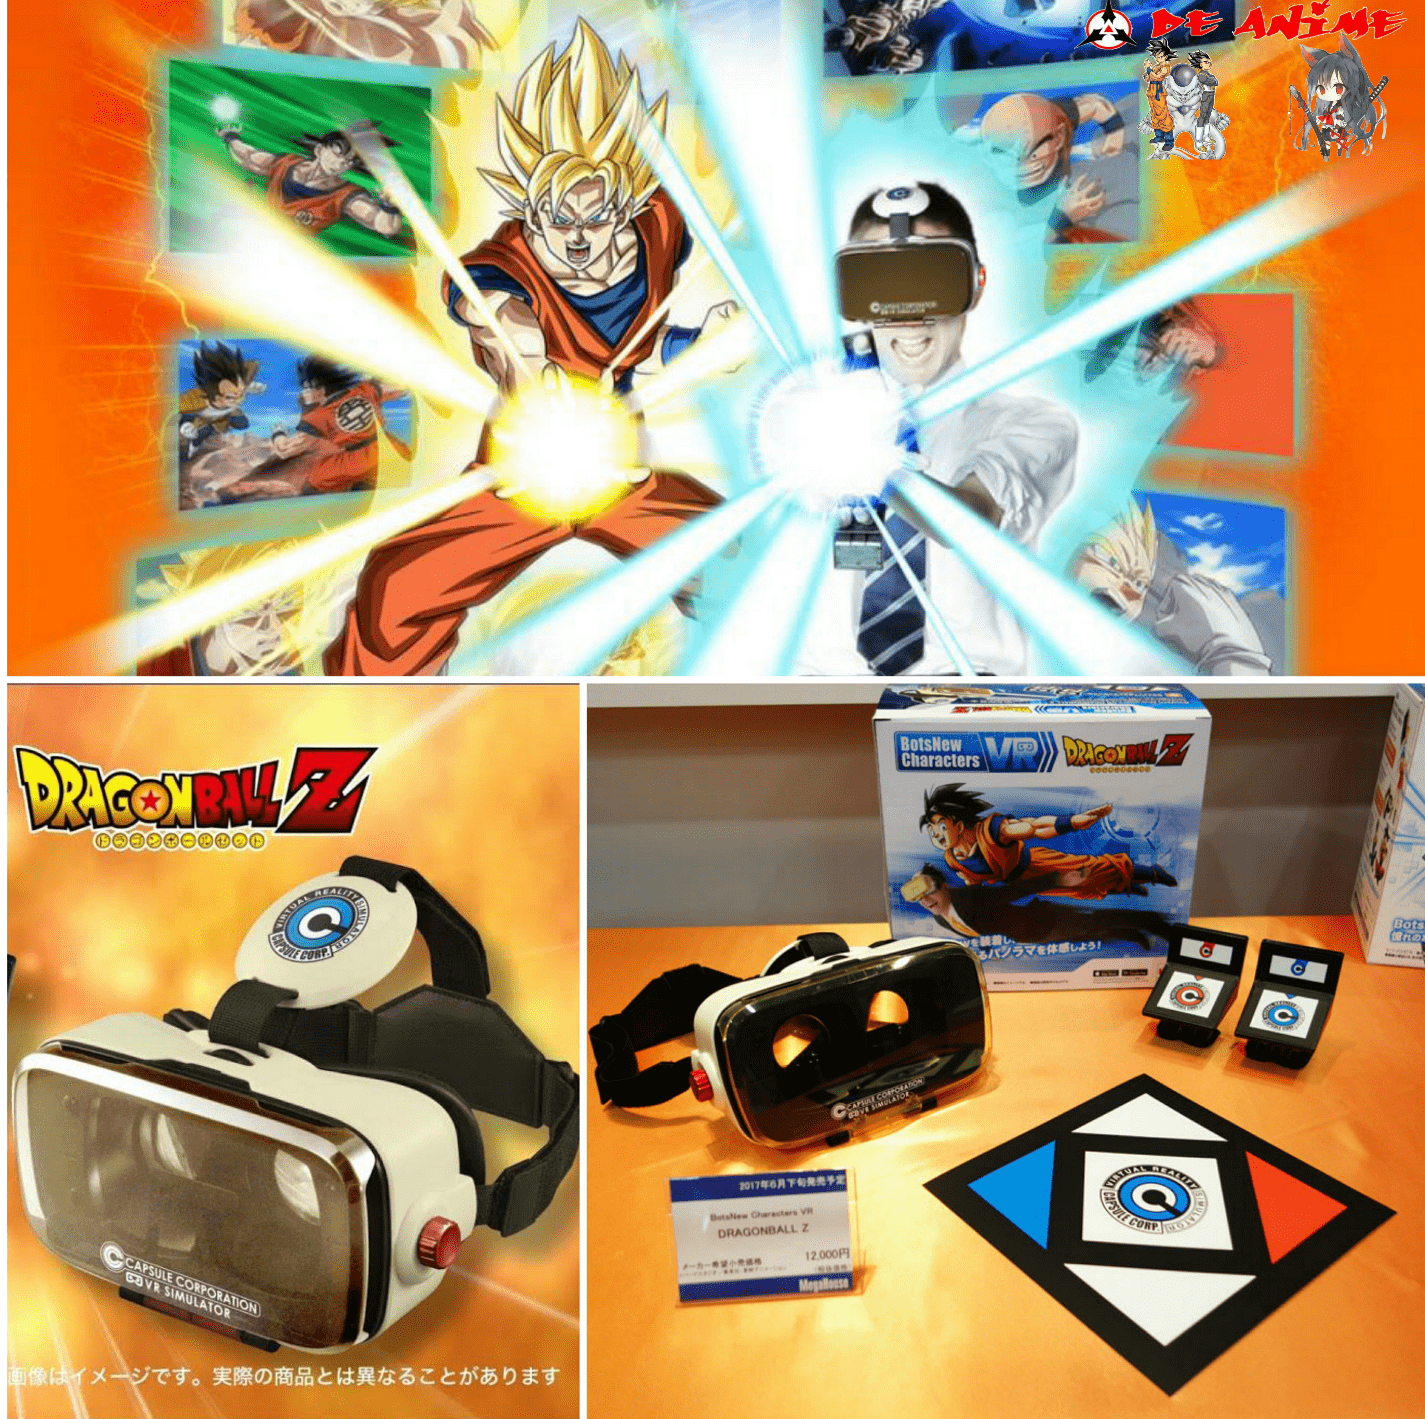 caracteristicas-vr-dragon-ball-set